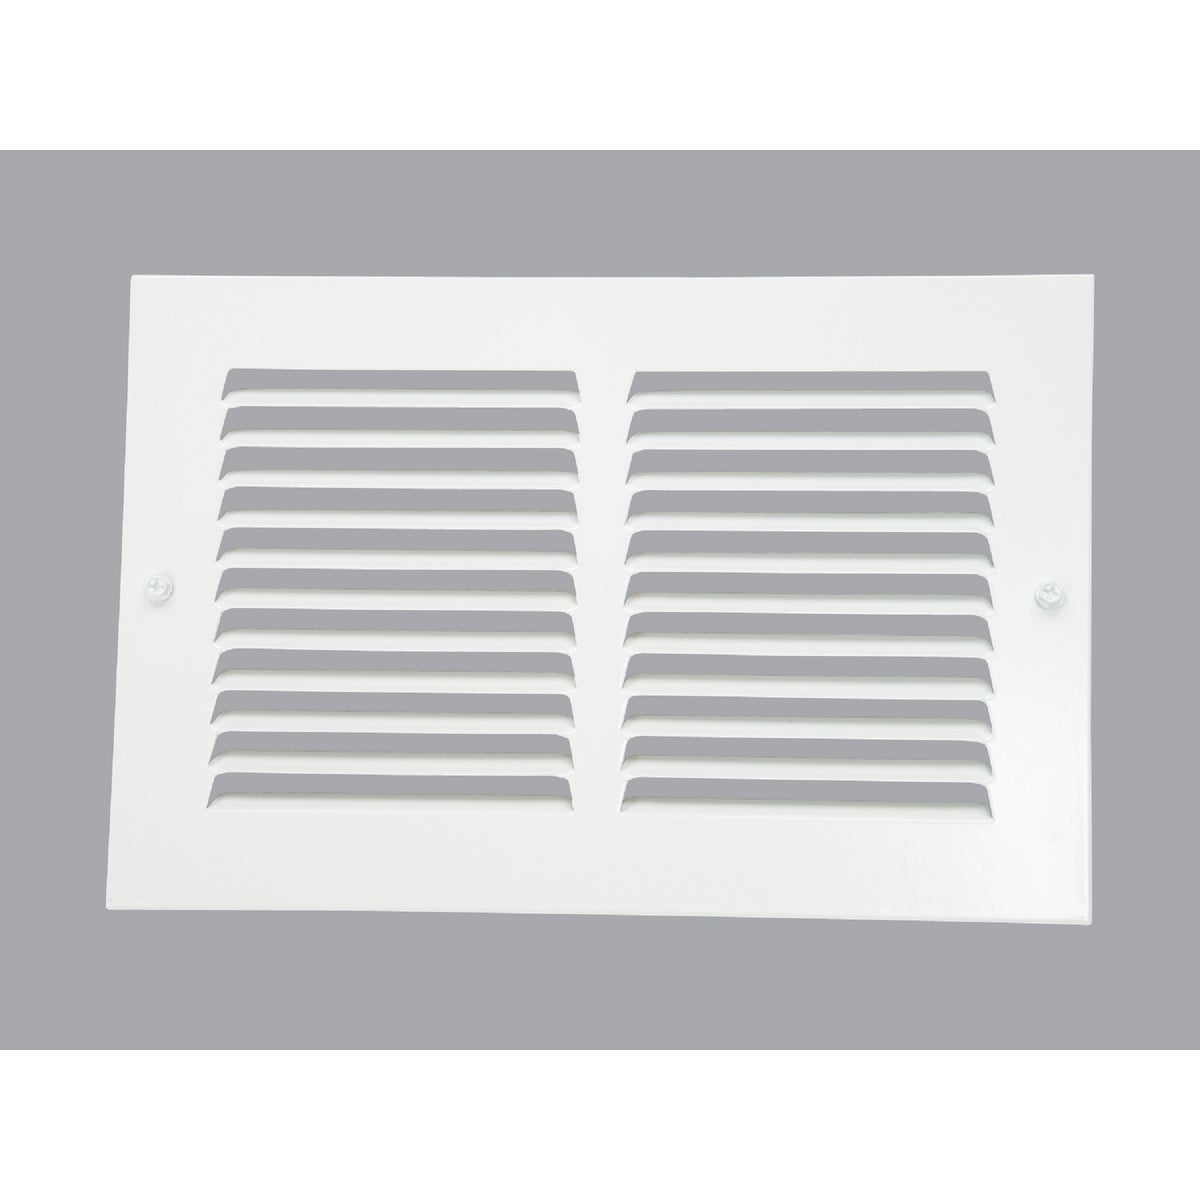 6X10WH RETURN AIR GRILLE - 1RA1006WH by Do it Best